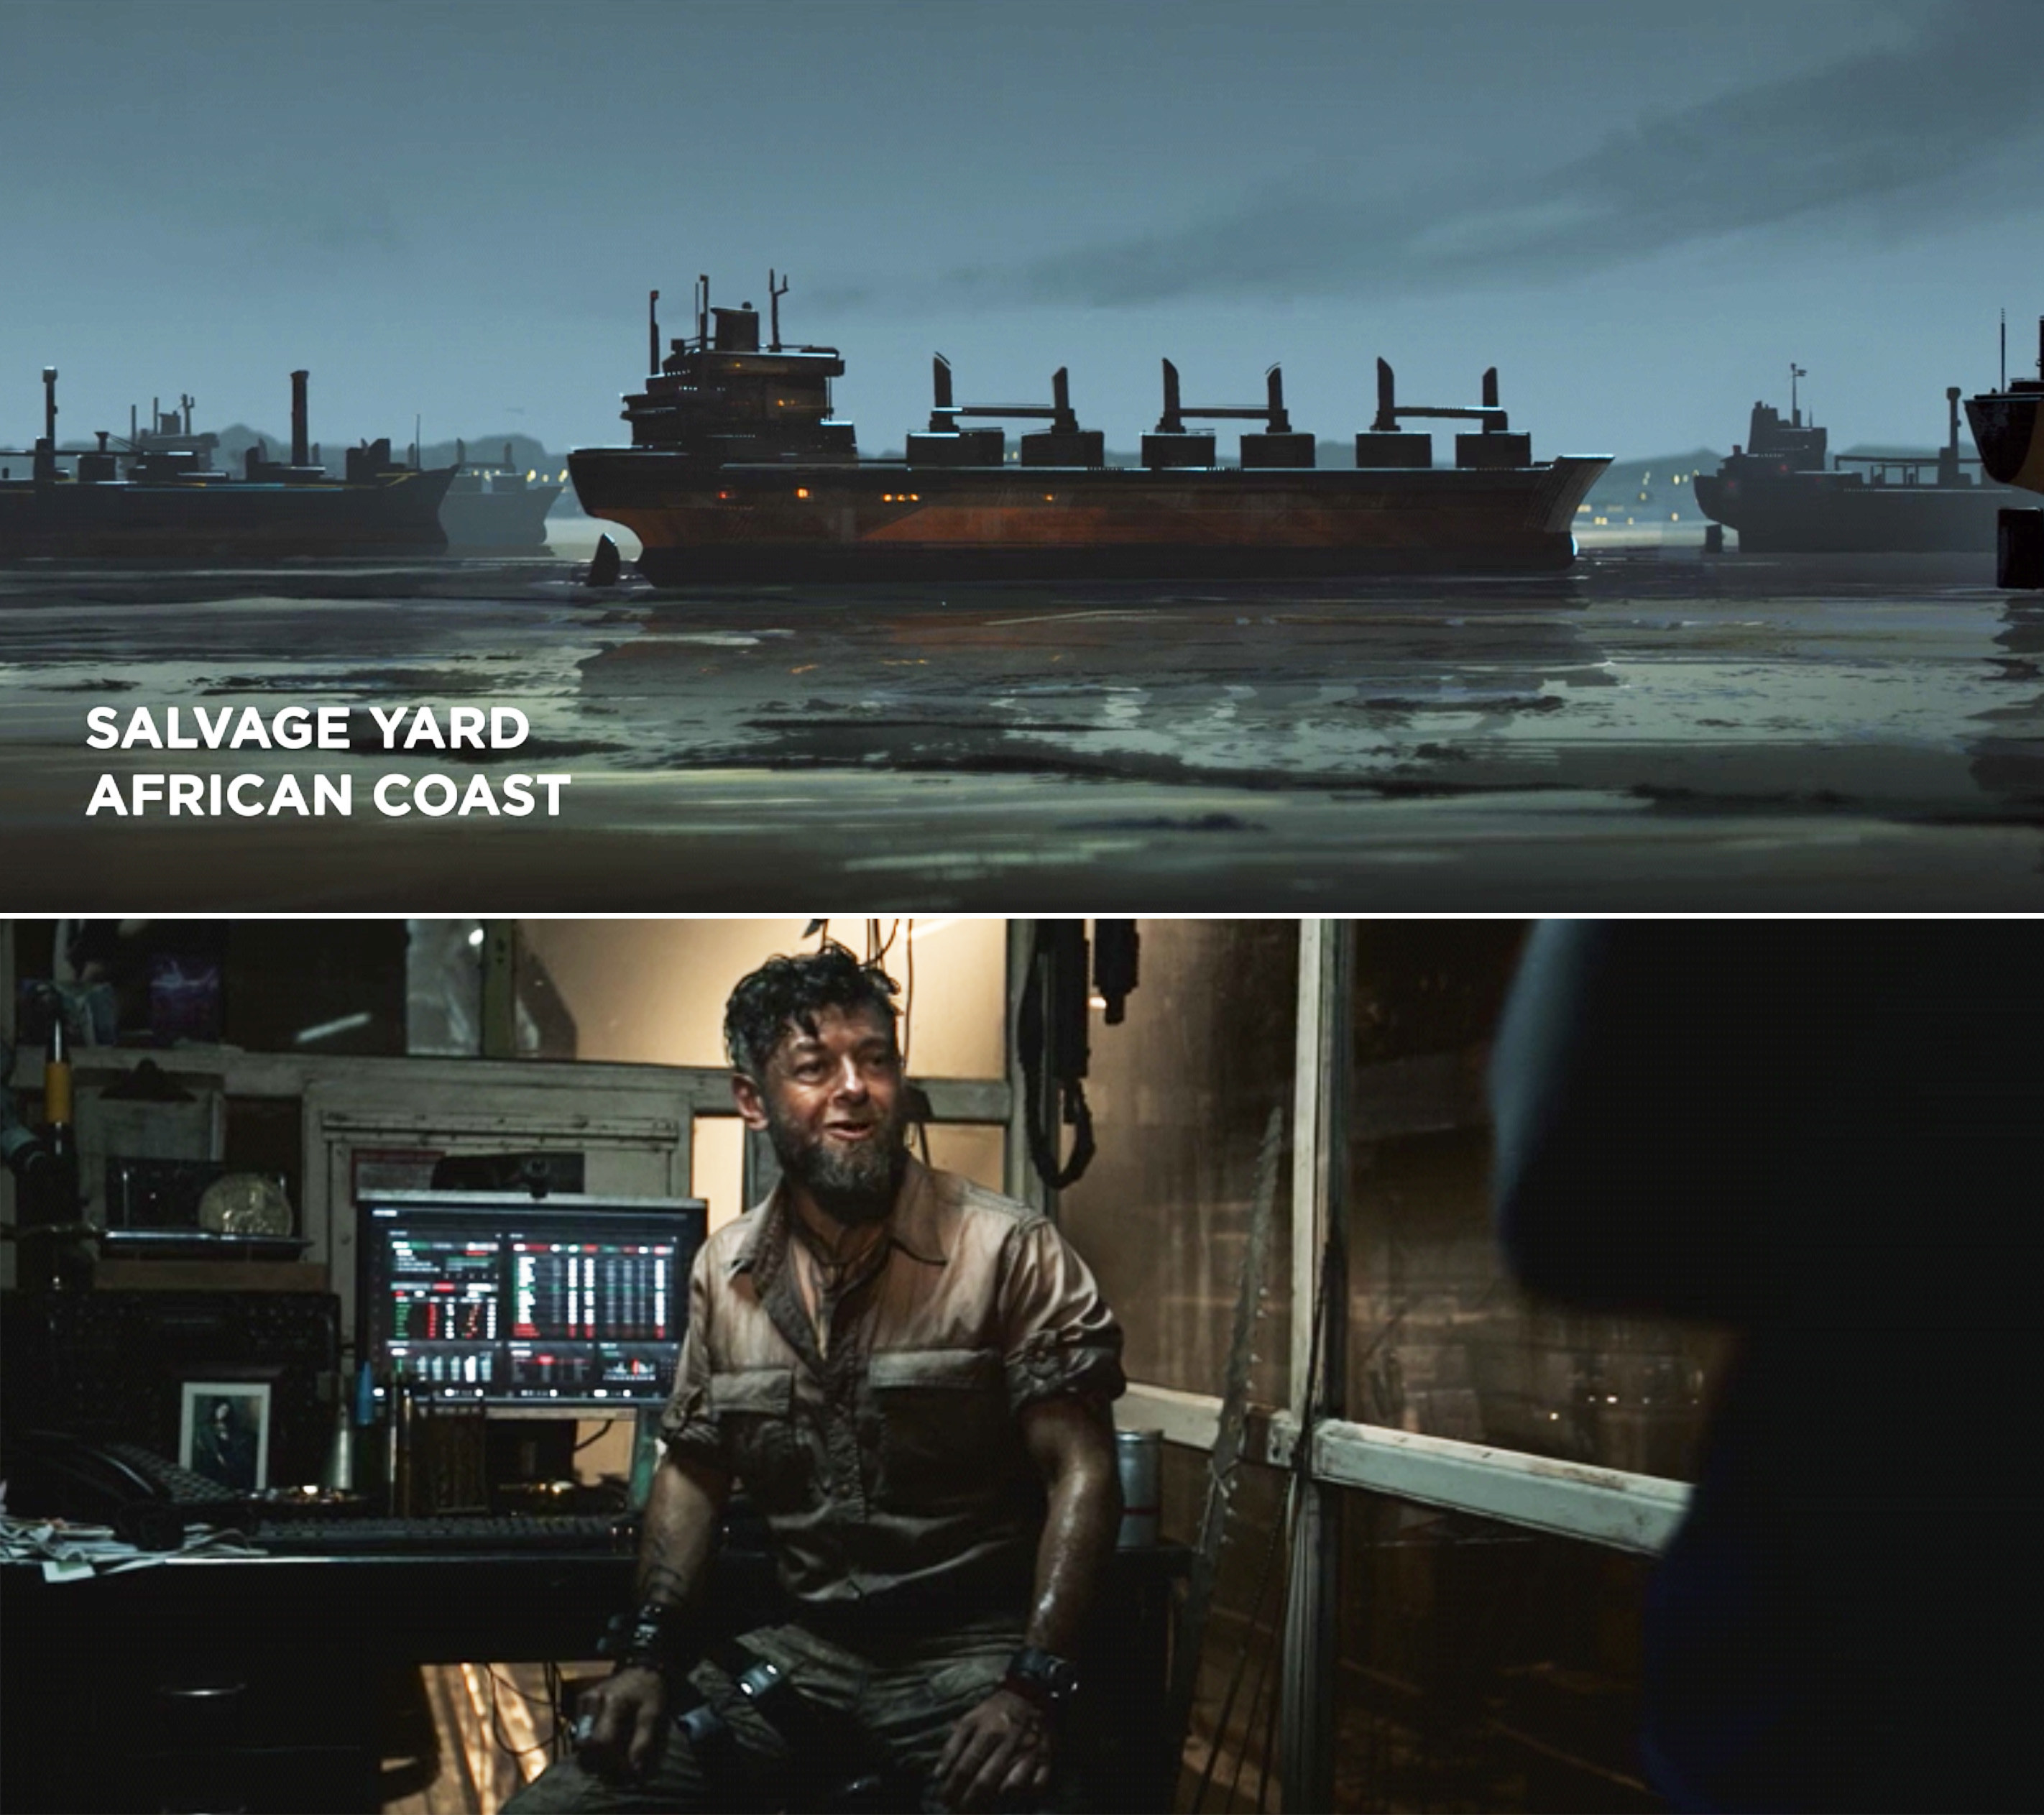 """A boat on the water with a lower third reading """"Salvage yard. African coast"""""""